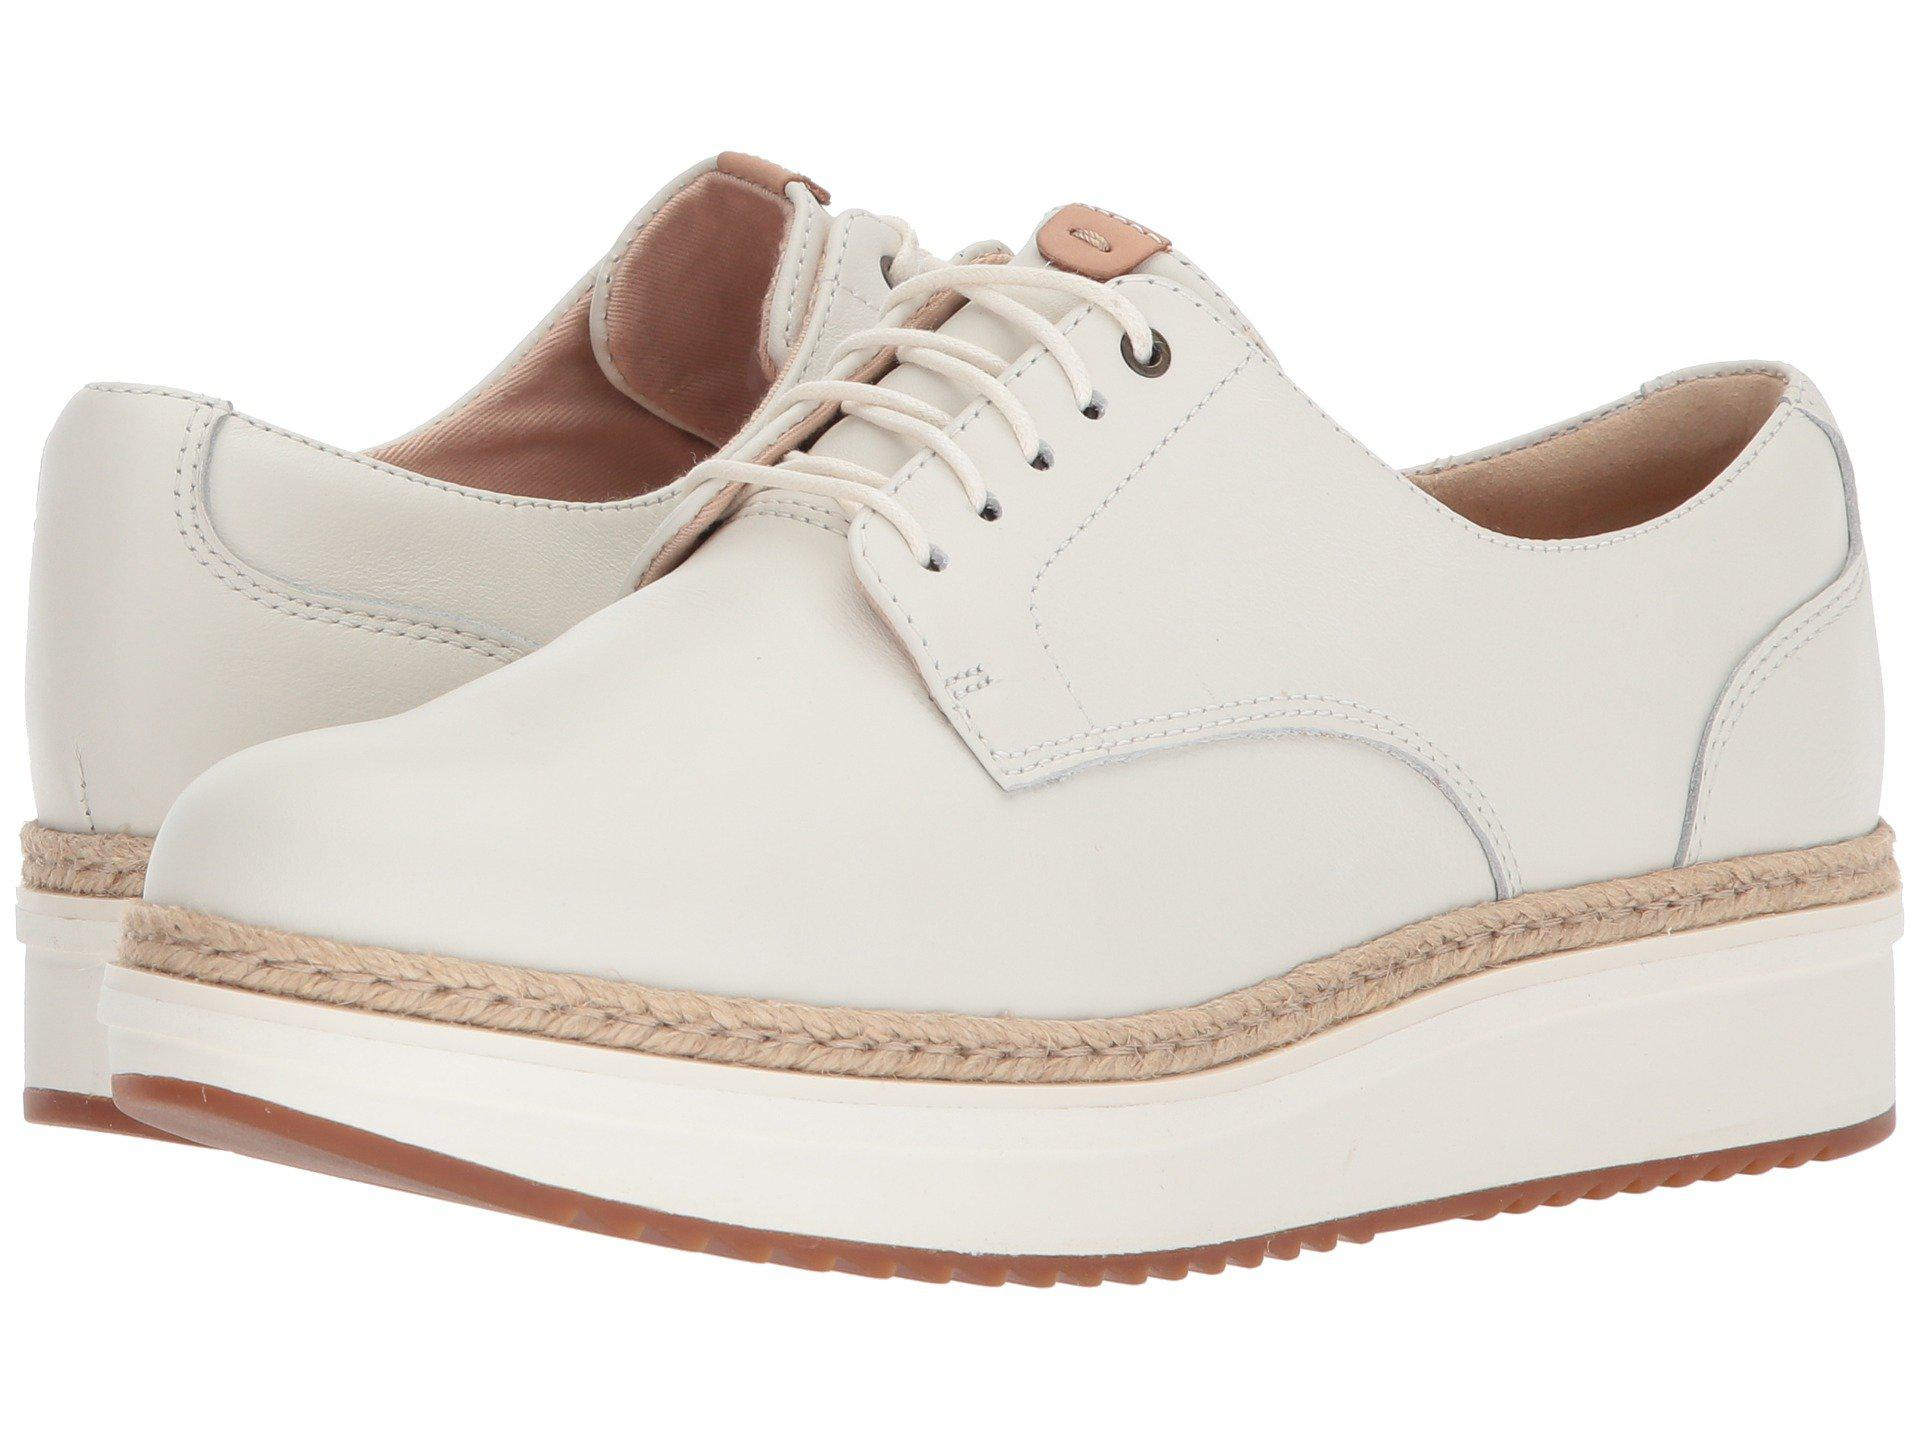 shop sale online buy online with paypal White leather 'Teadale Rhea' lace-up shoes best store to get sale online outlet fashion Style 5h0lv